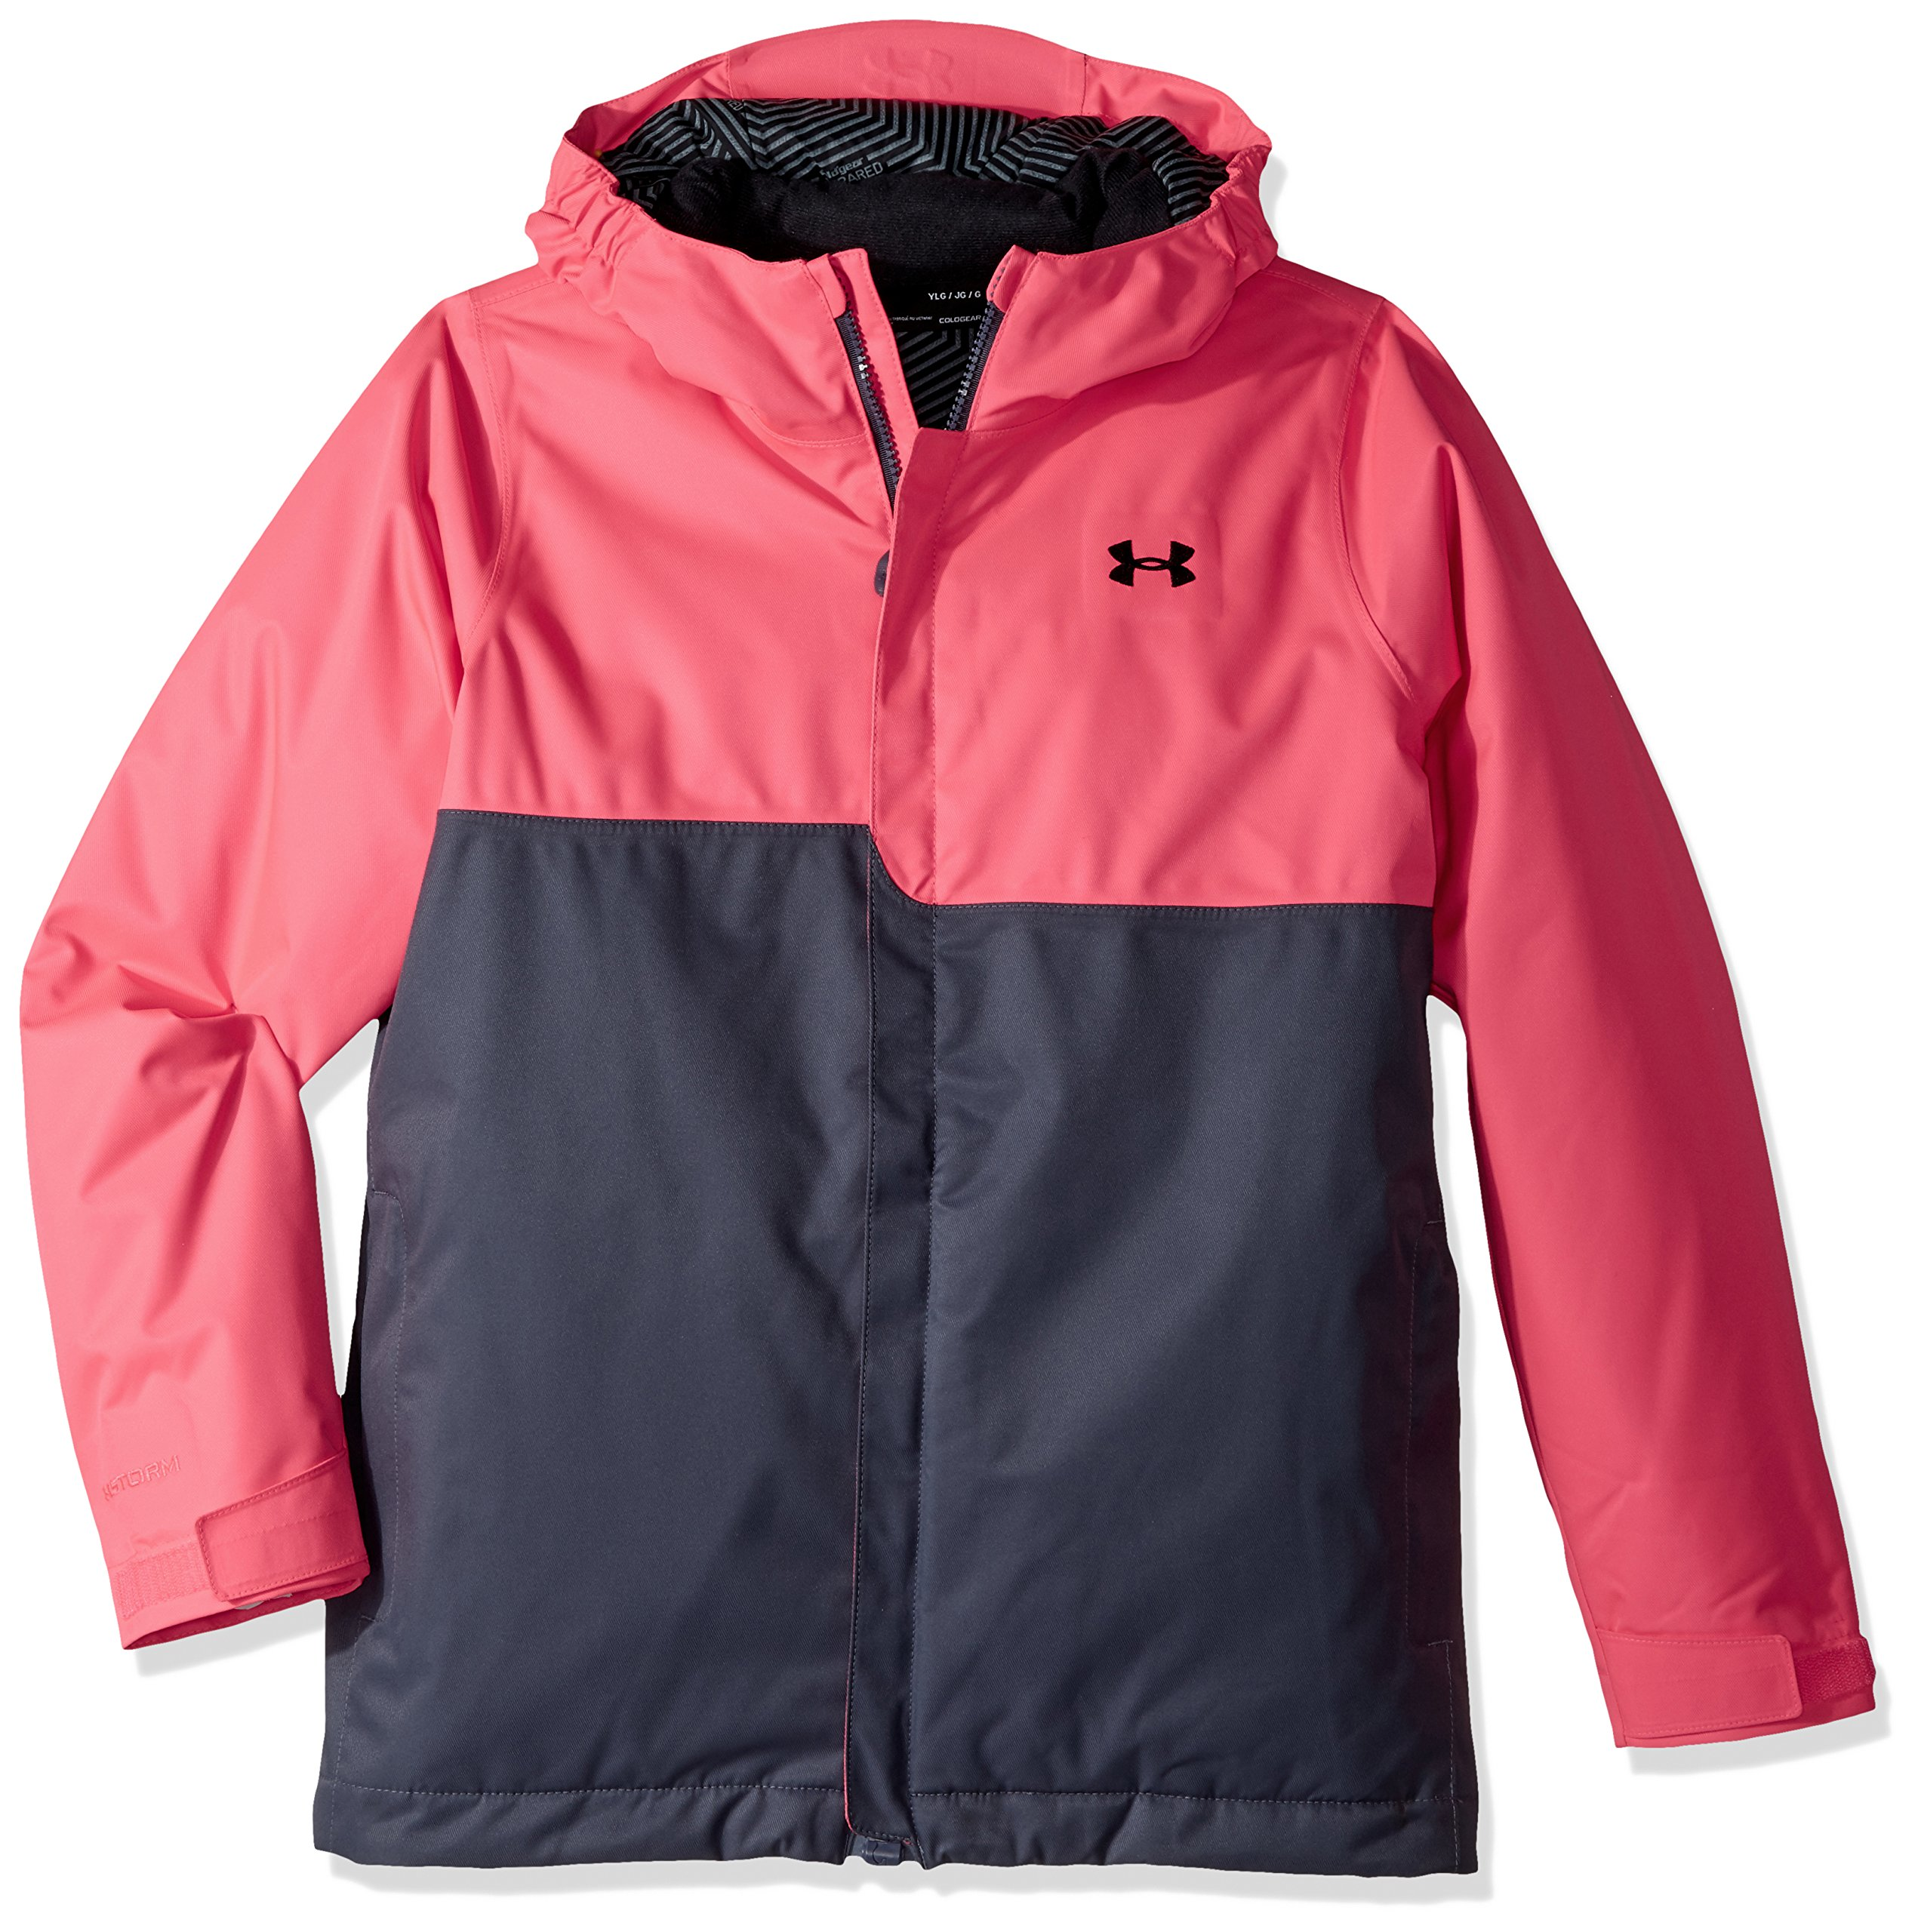 Under Armour Outerwear Youth Girls Pp Rideable Jacket, Penta Pink/Black, X-Small